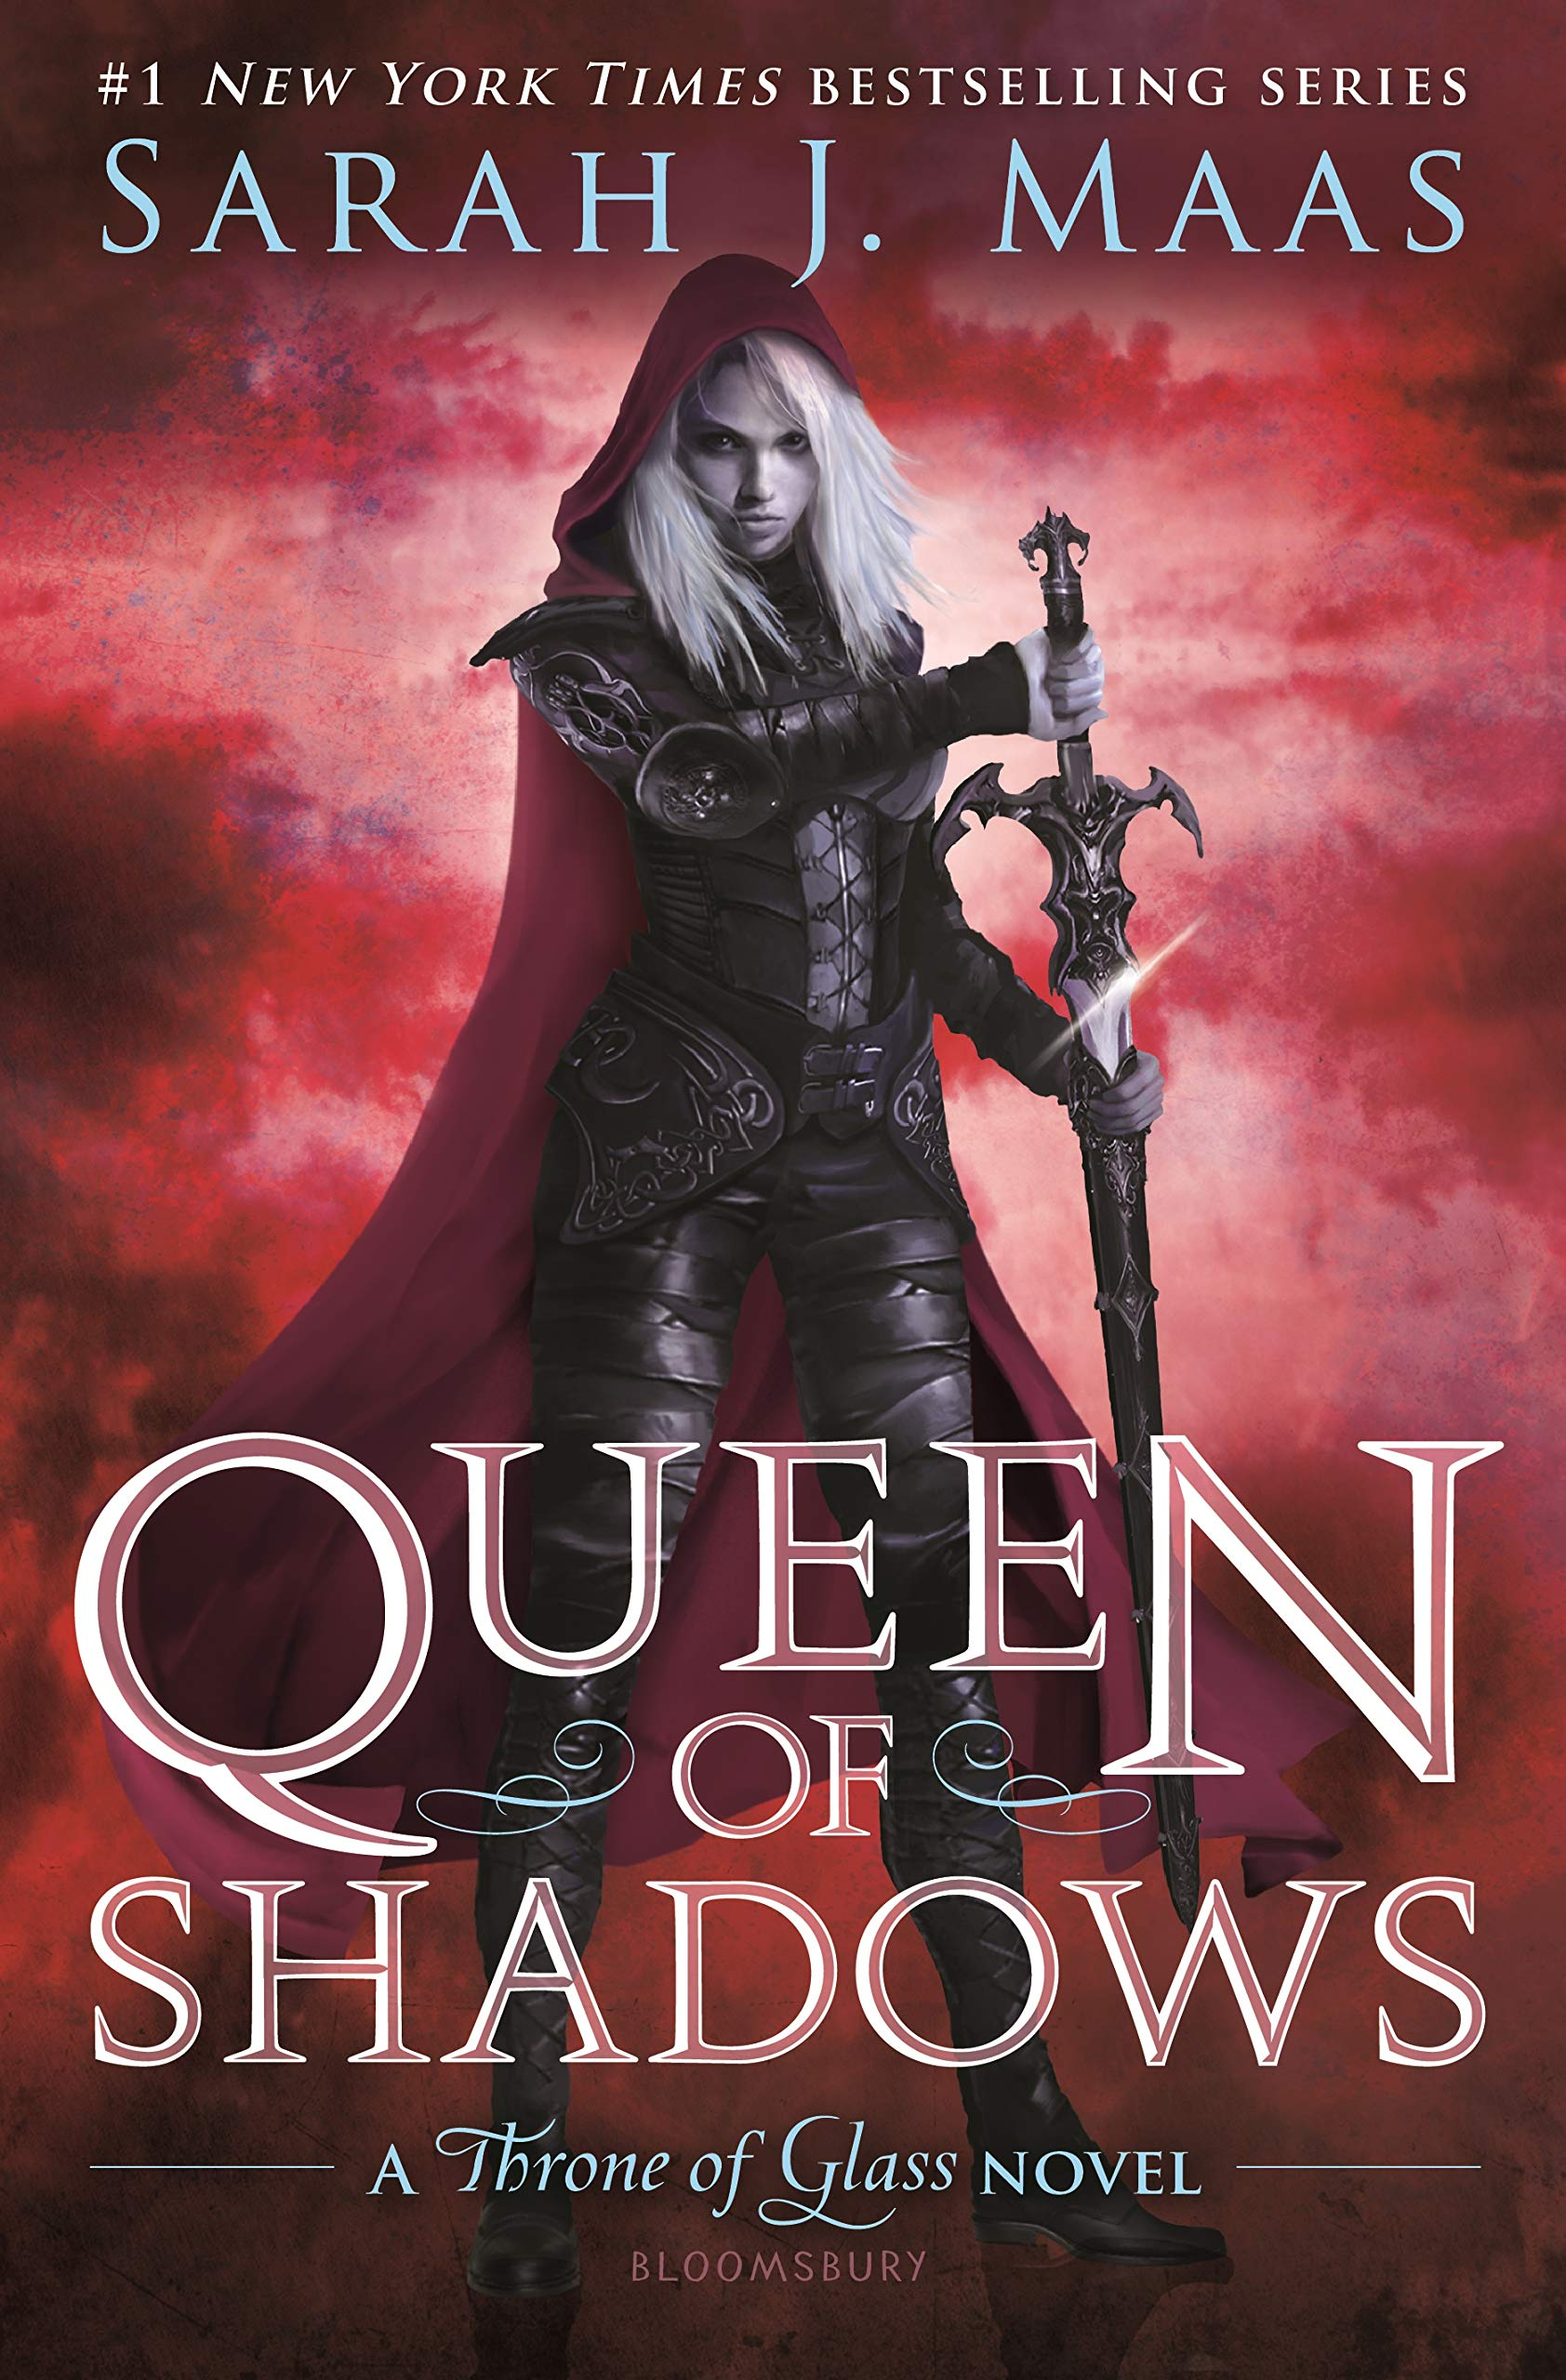 Buy Queen of Shadows: Throne of Glass 4 Book Online at Low Prices in India  | Queen of Shadows: Throne of Glass 4 Reviews & Ratings - Amazon.in